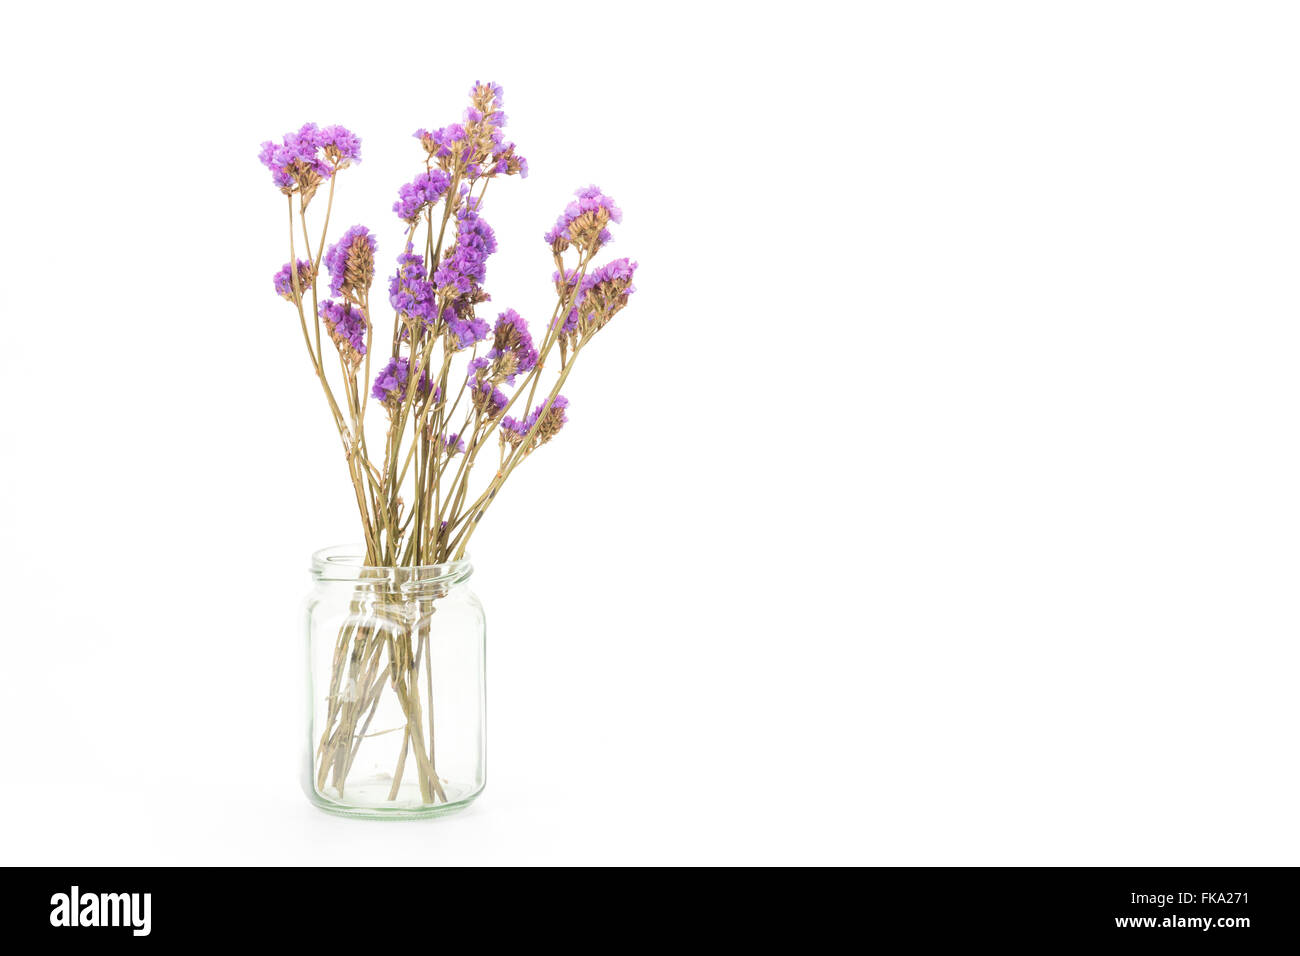 Dried Statice flowers isolated on white background, Copy space - Stock Image